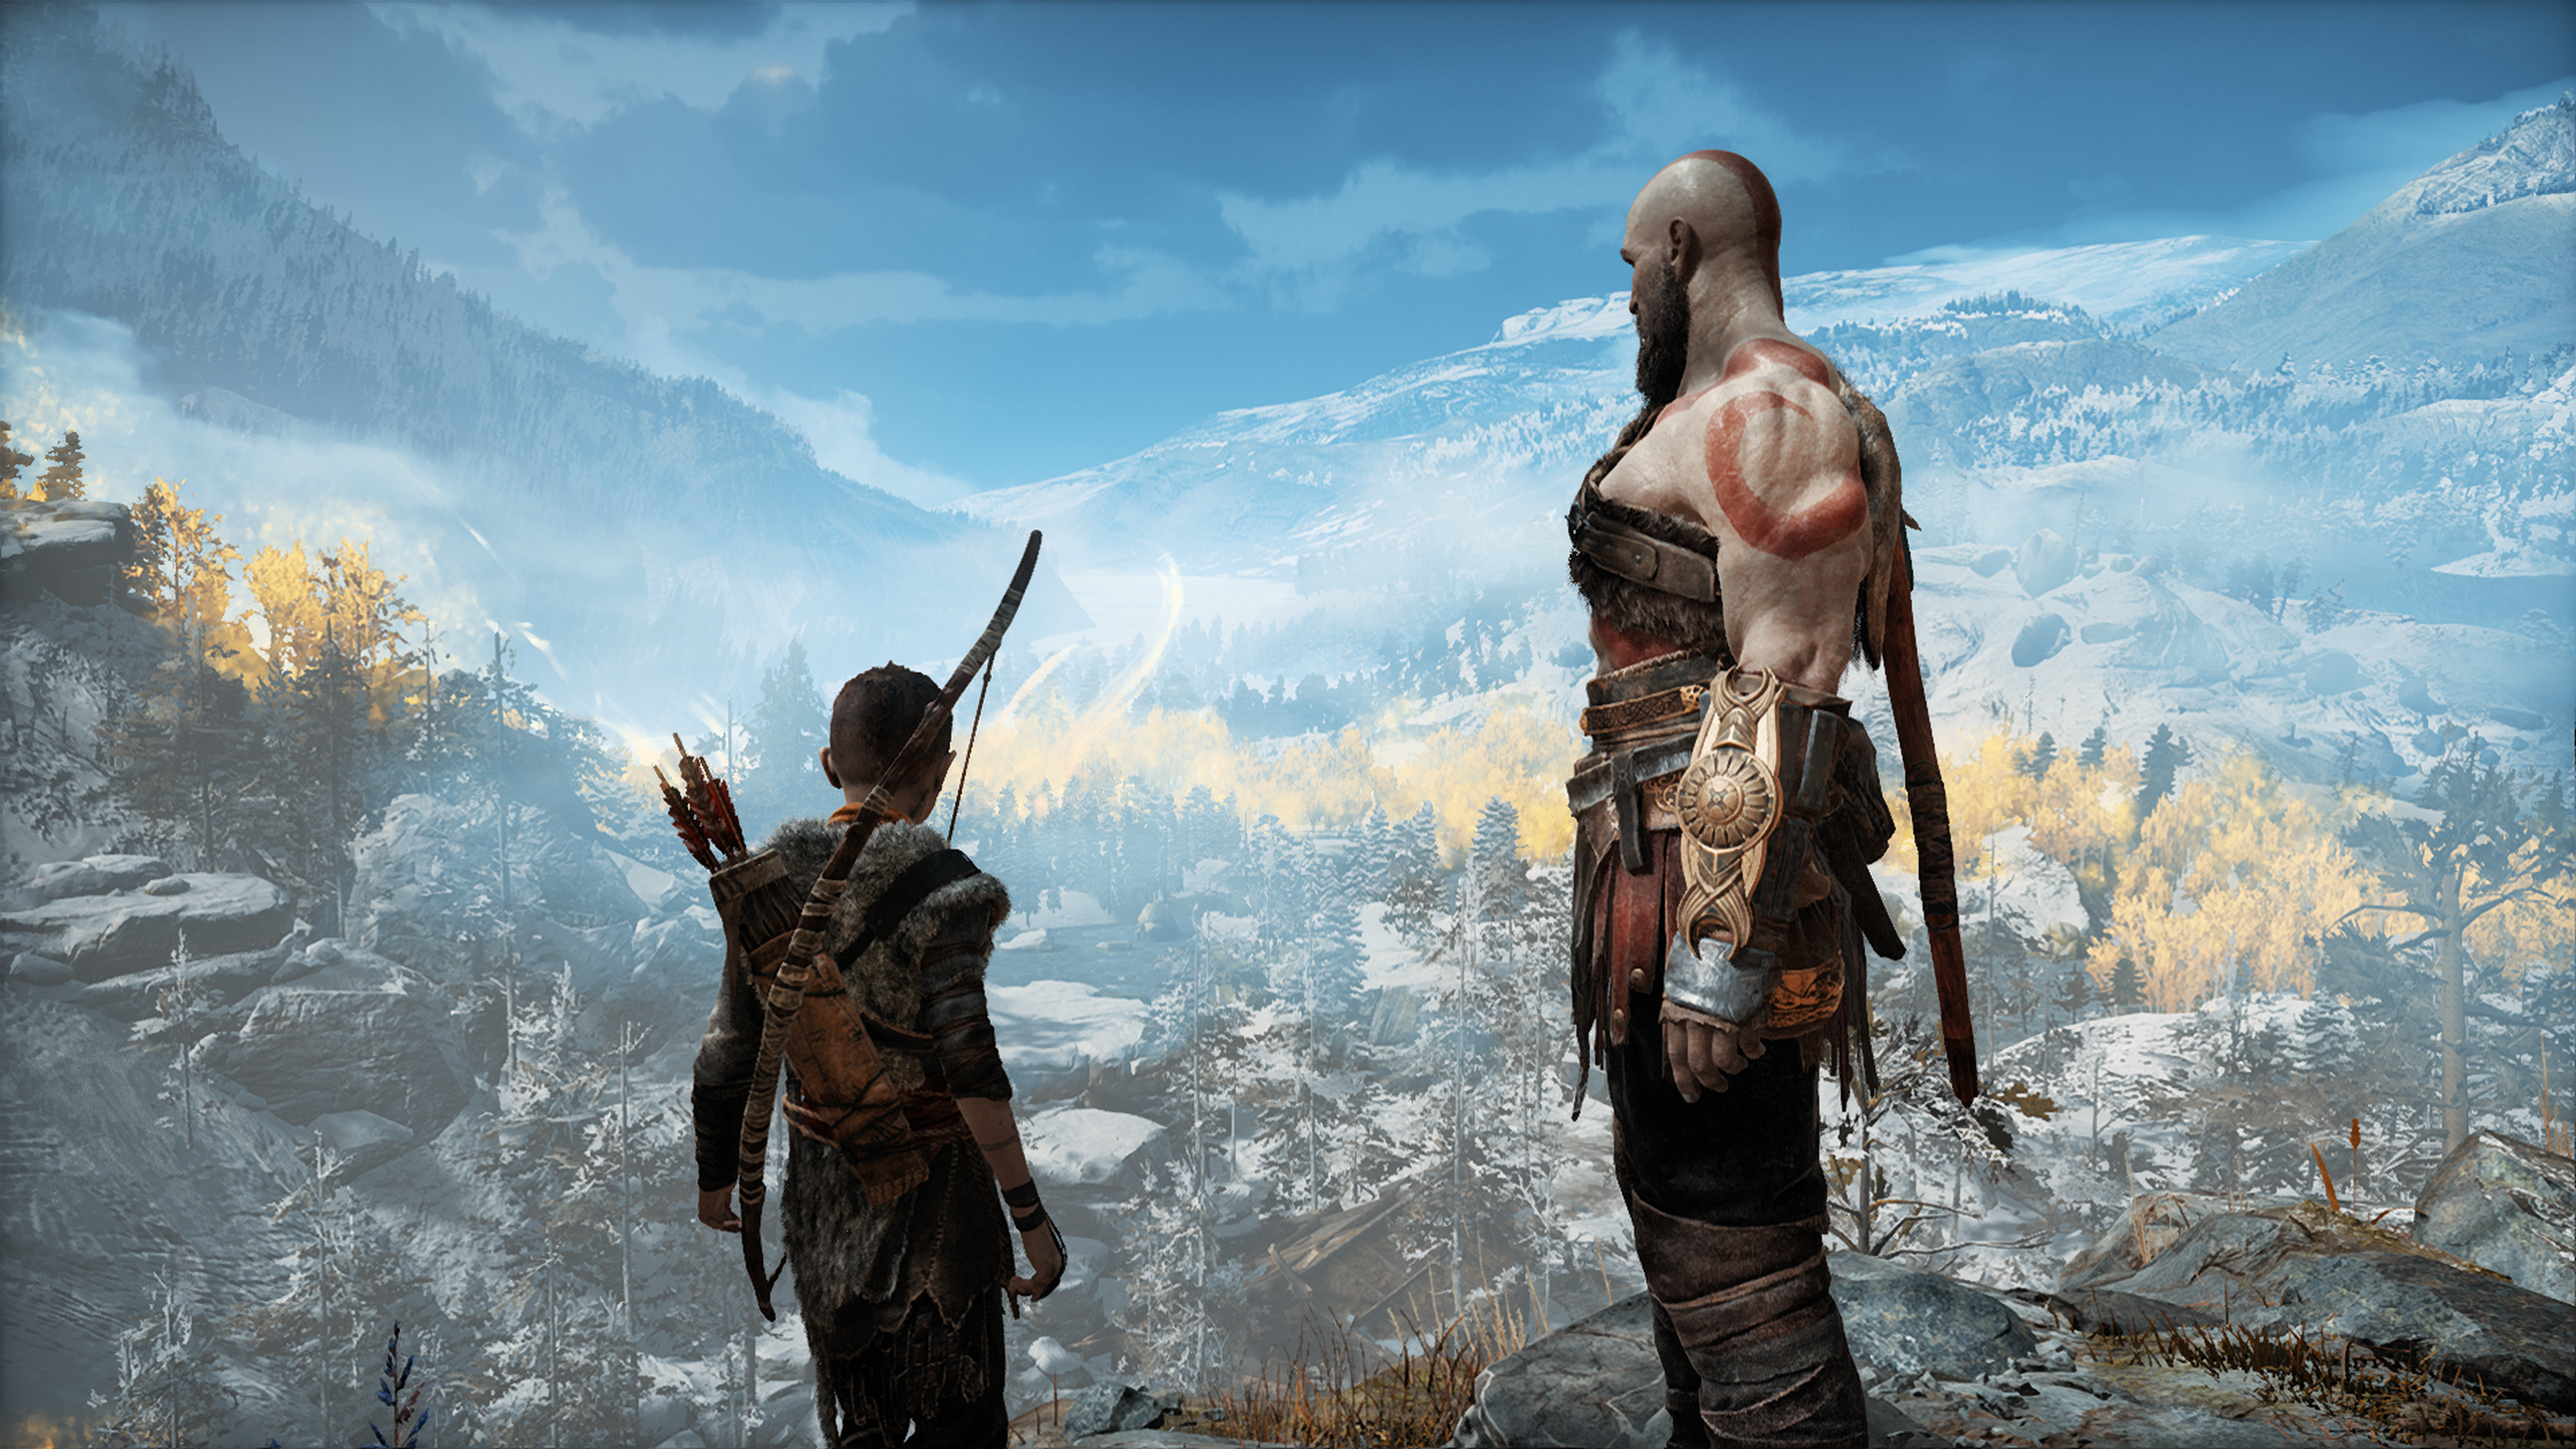 Pictures Of Divine Guidance Mastering God Of War 2 7